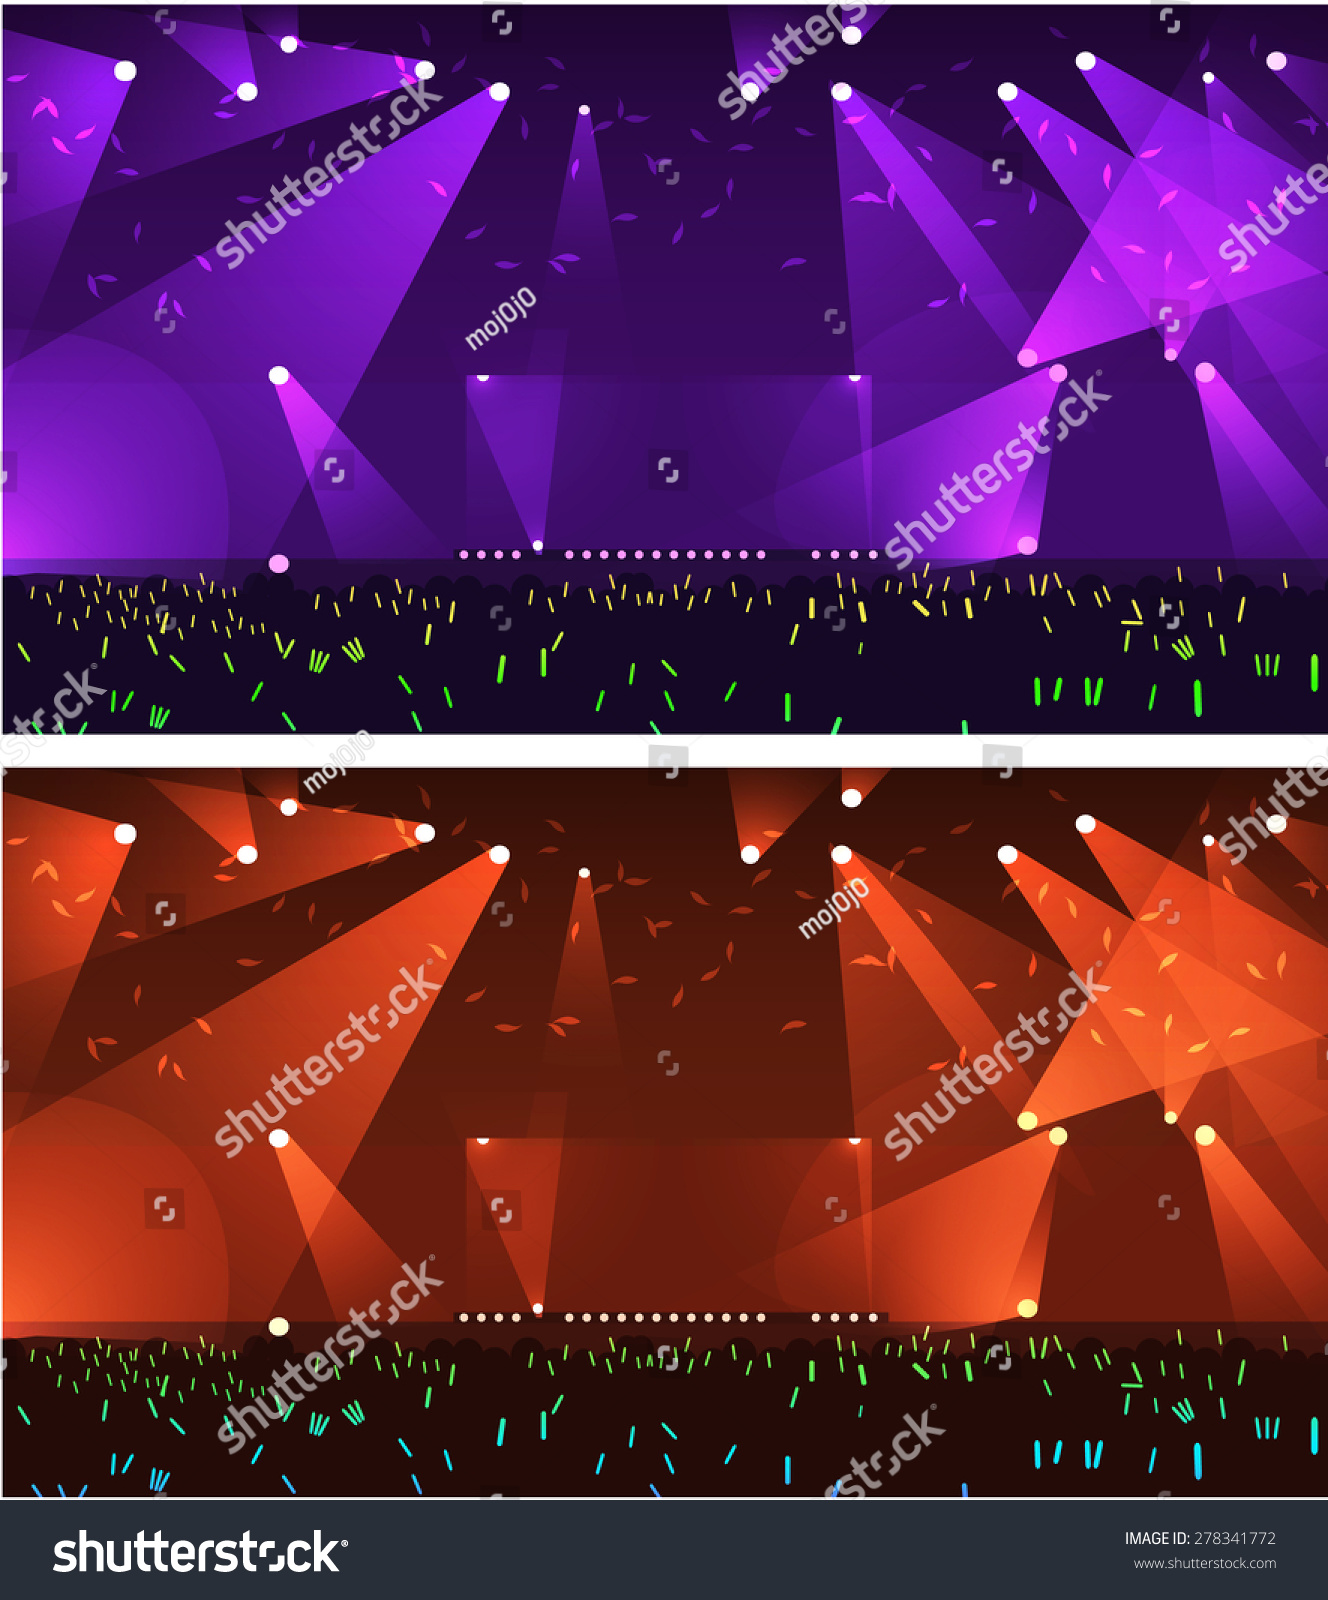 Pics photos rock concert background - Set Of Empty Stage Rock Concert Event With Spot Light Vector Background With Happy People Raising